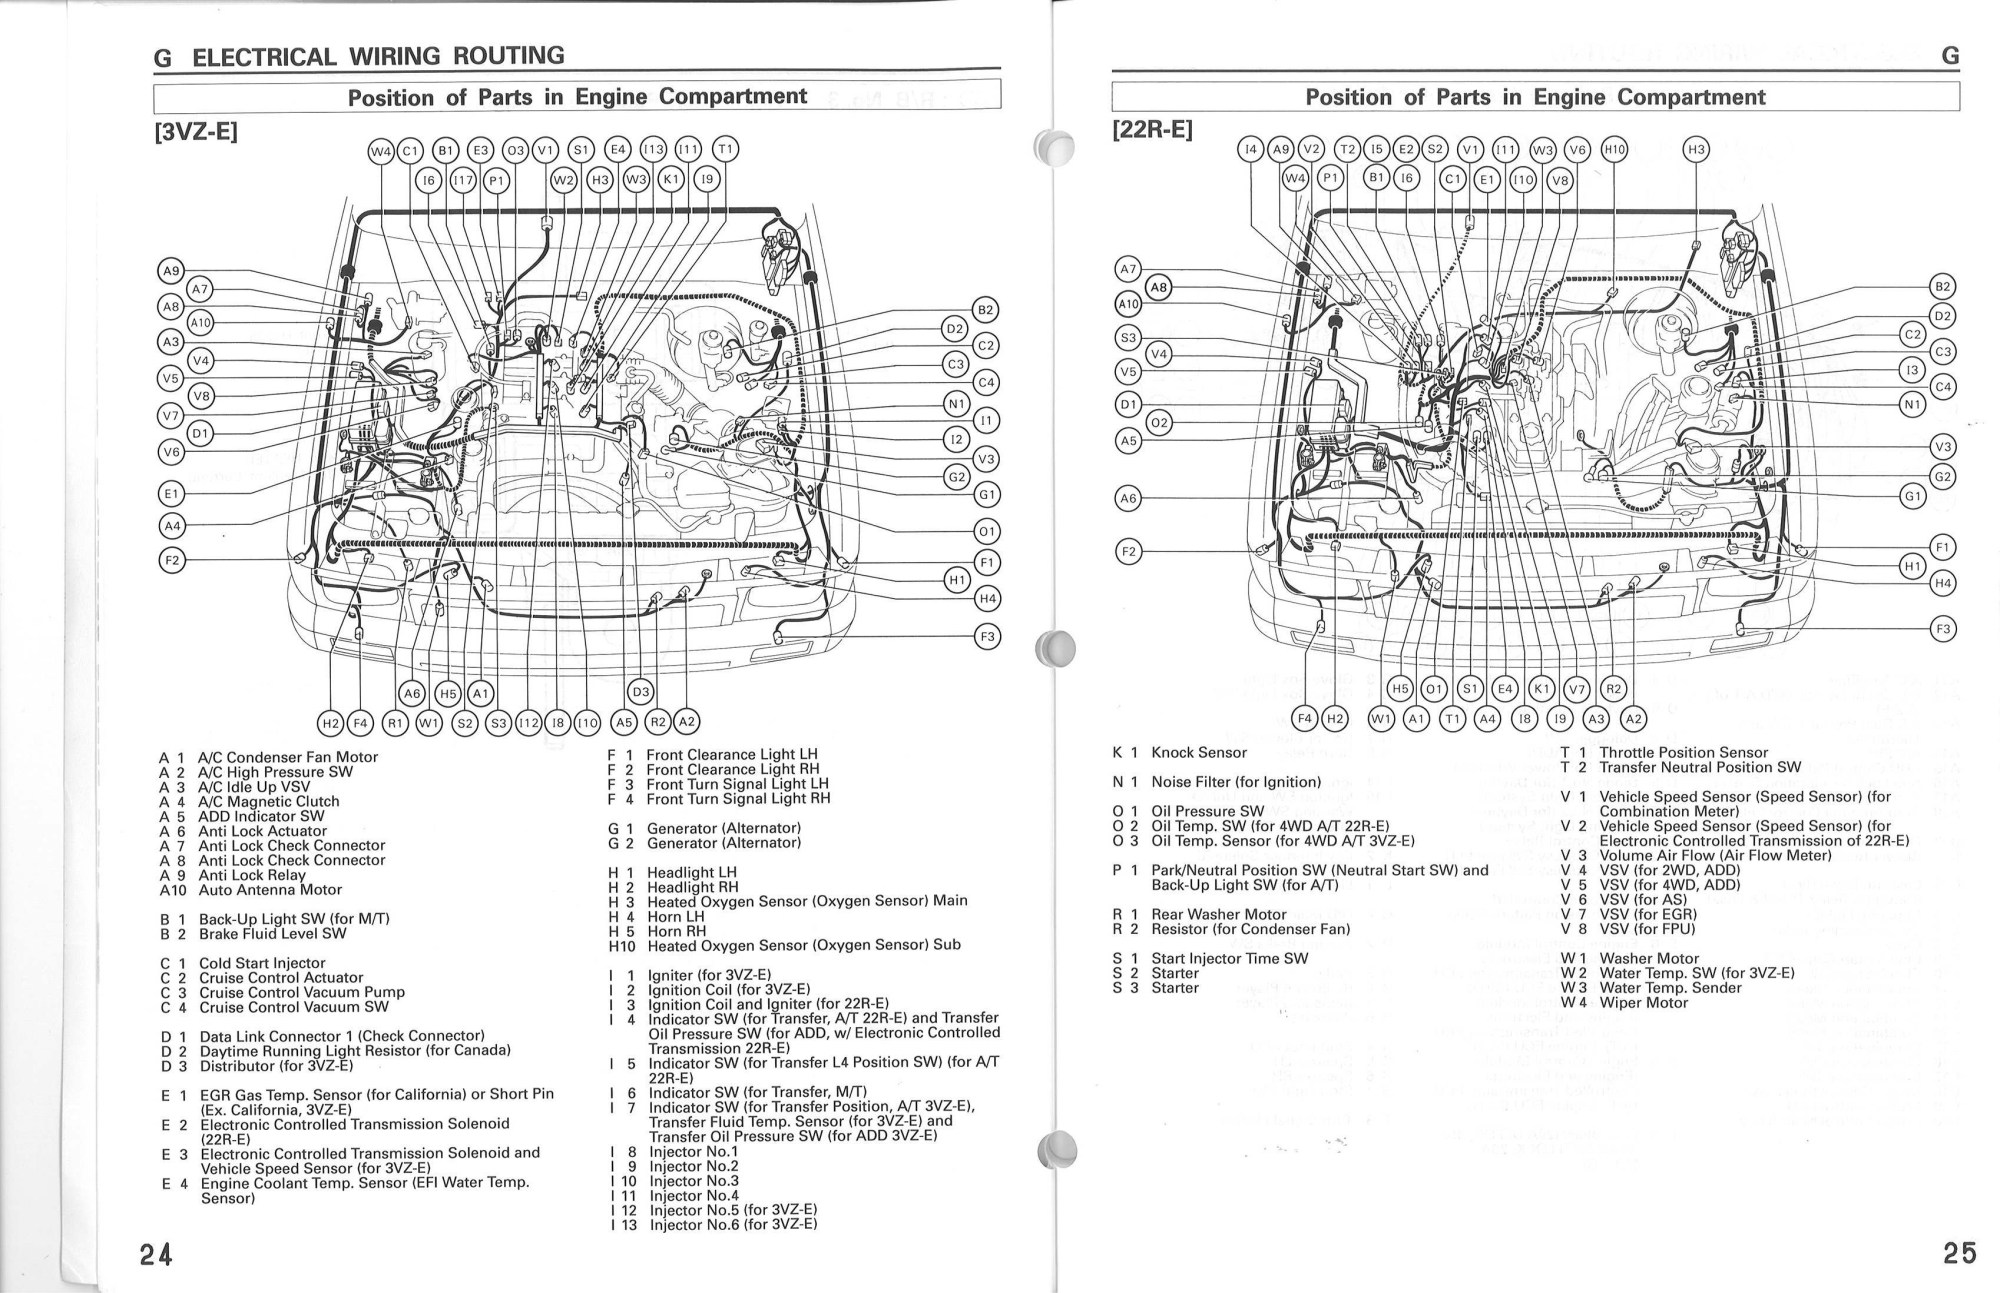 hight resolution of 1994 isuzu rodeo electrical diagram imageresizertool com 1978 dodge truck wiring harness 1995 chevy truck wiring